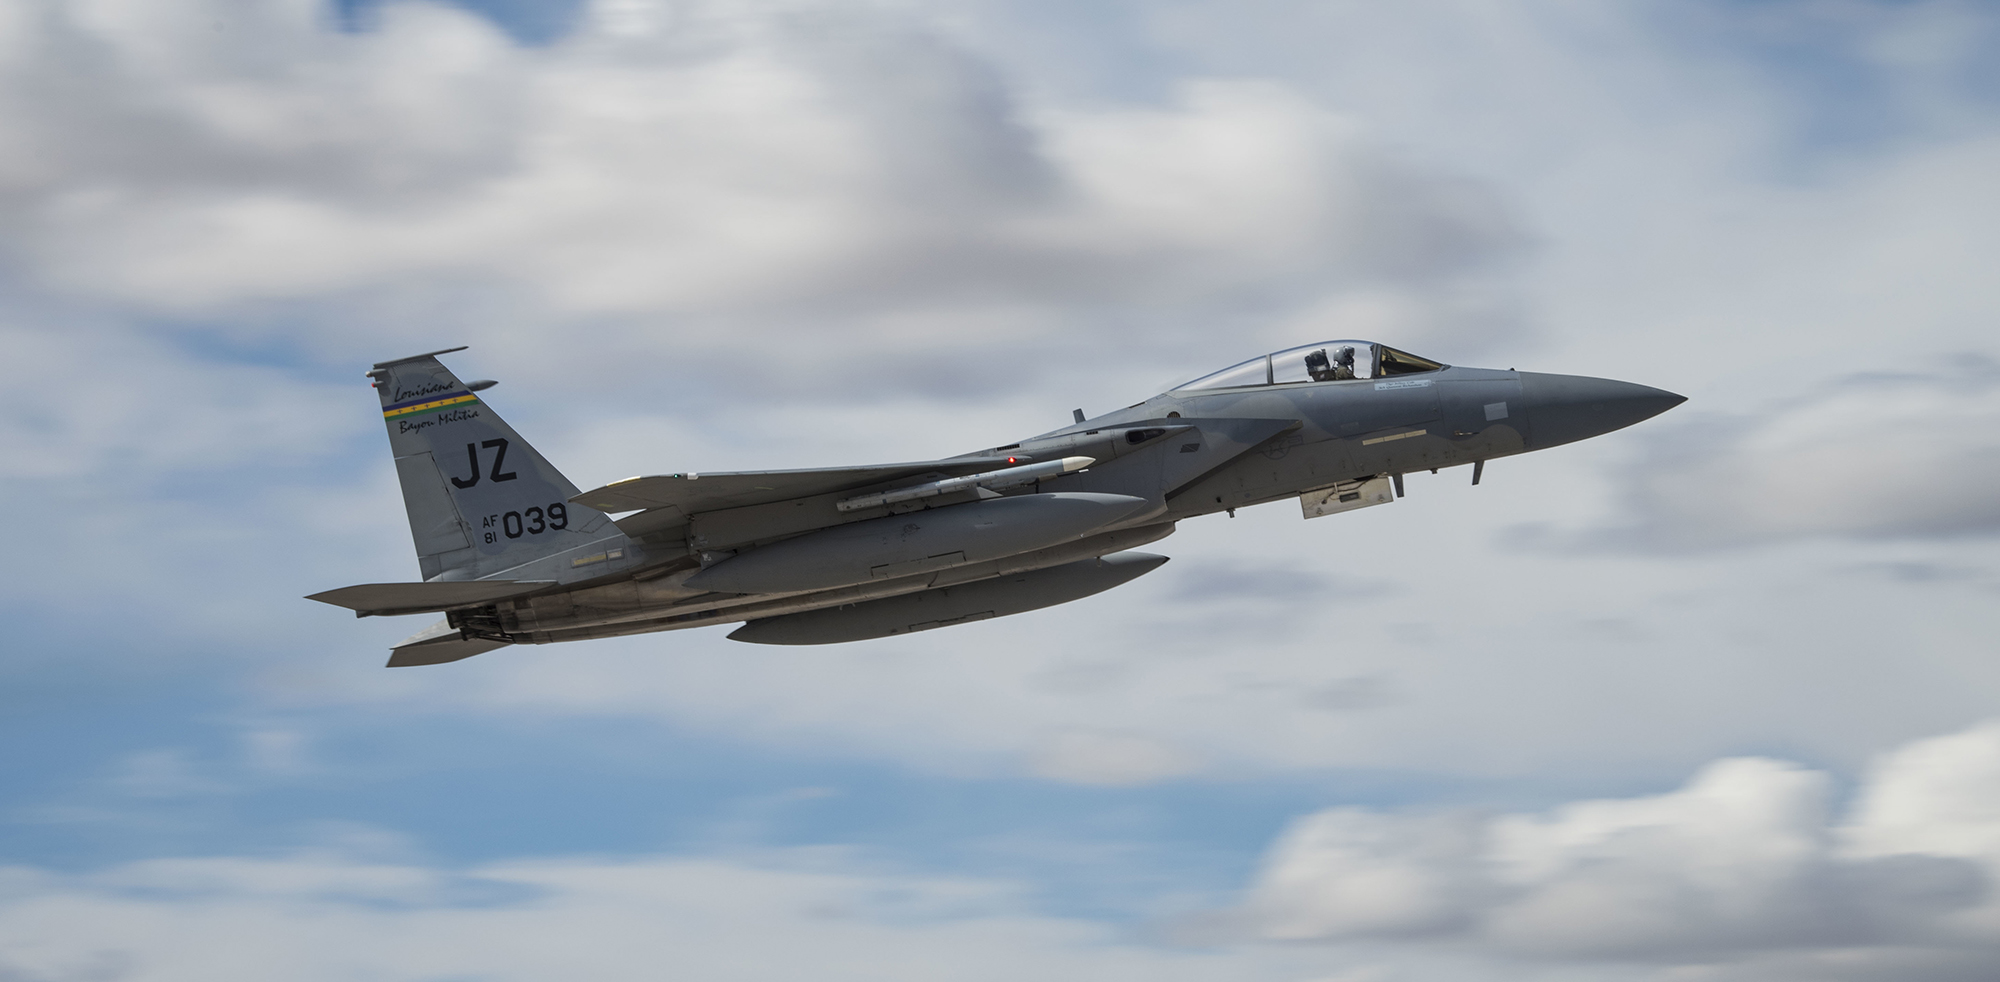 An F-15E Strike Eagle fighter jet takes off MArch 12, 2019, to participate in Red Flag 19-2 at Nellis Air Force Base, Nev. (Airman 1st Class Bailee A. Darbasie/Air Force)